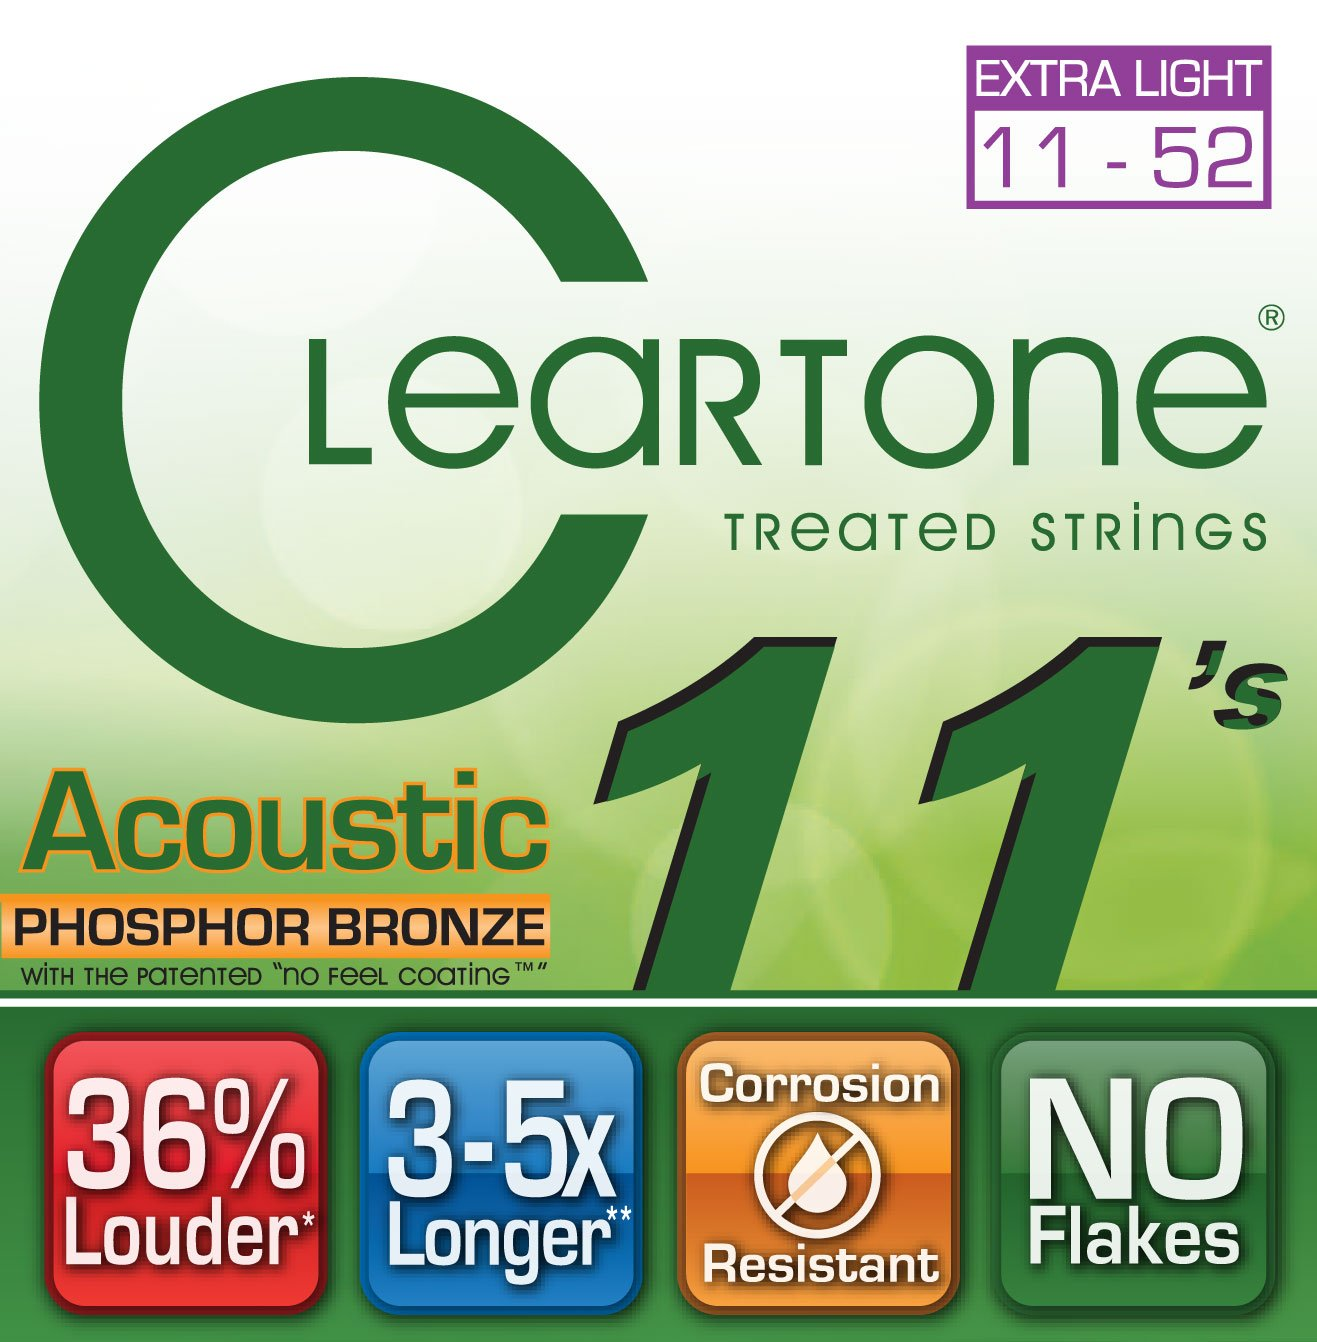 CLEARTONE 11's Phosphor Bronze Custom Lights